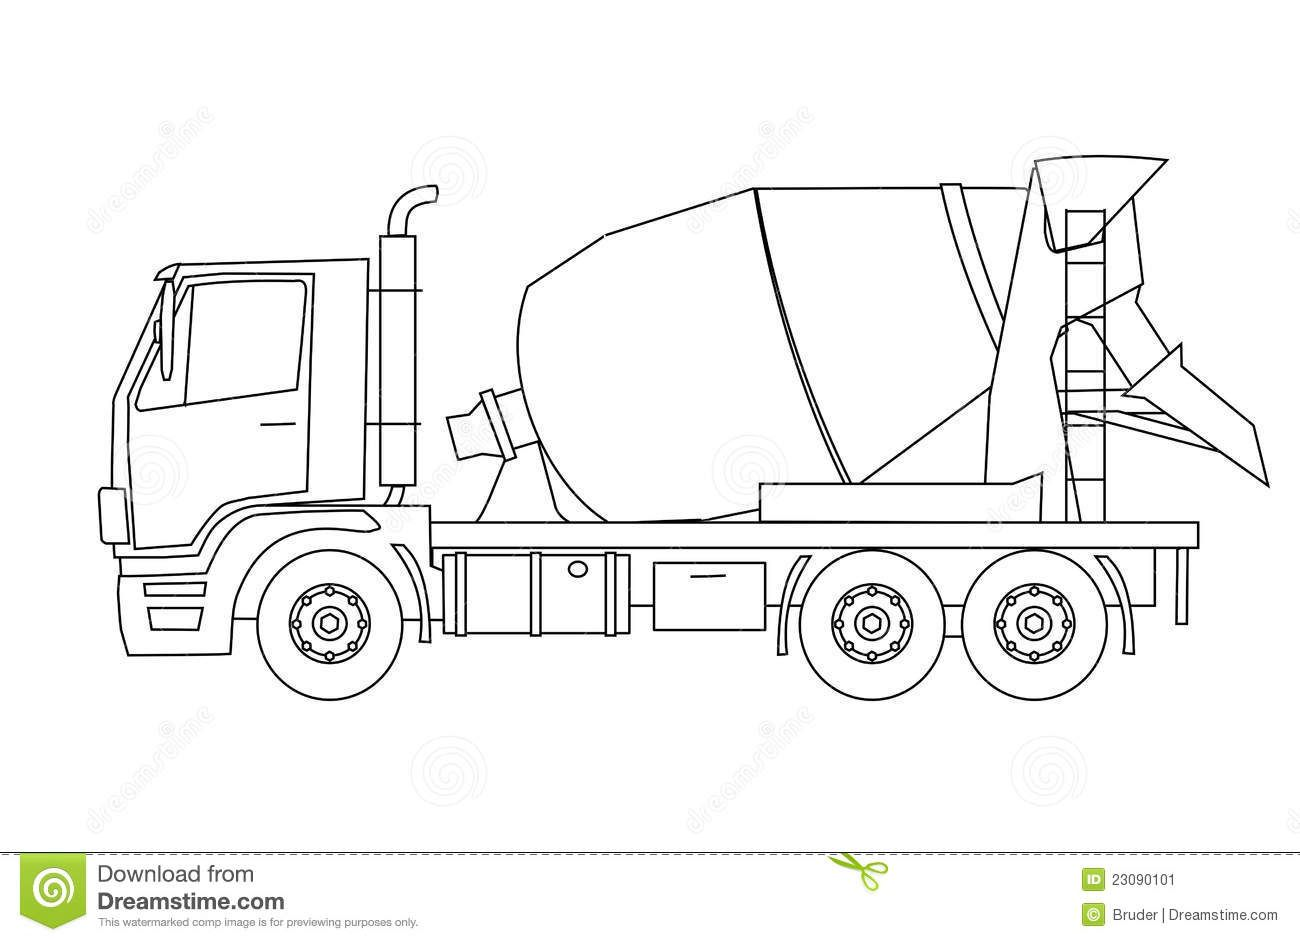 Concrete Mixer Truck 23090101 Jpg 1300 942 With Images